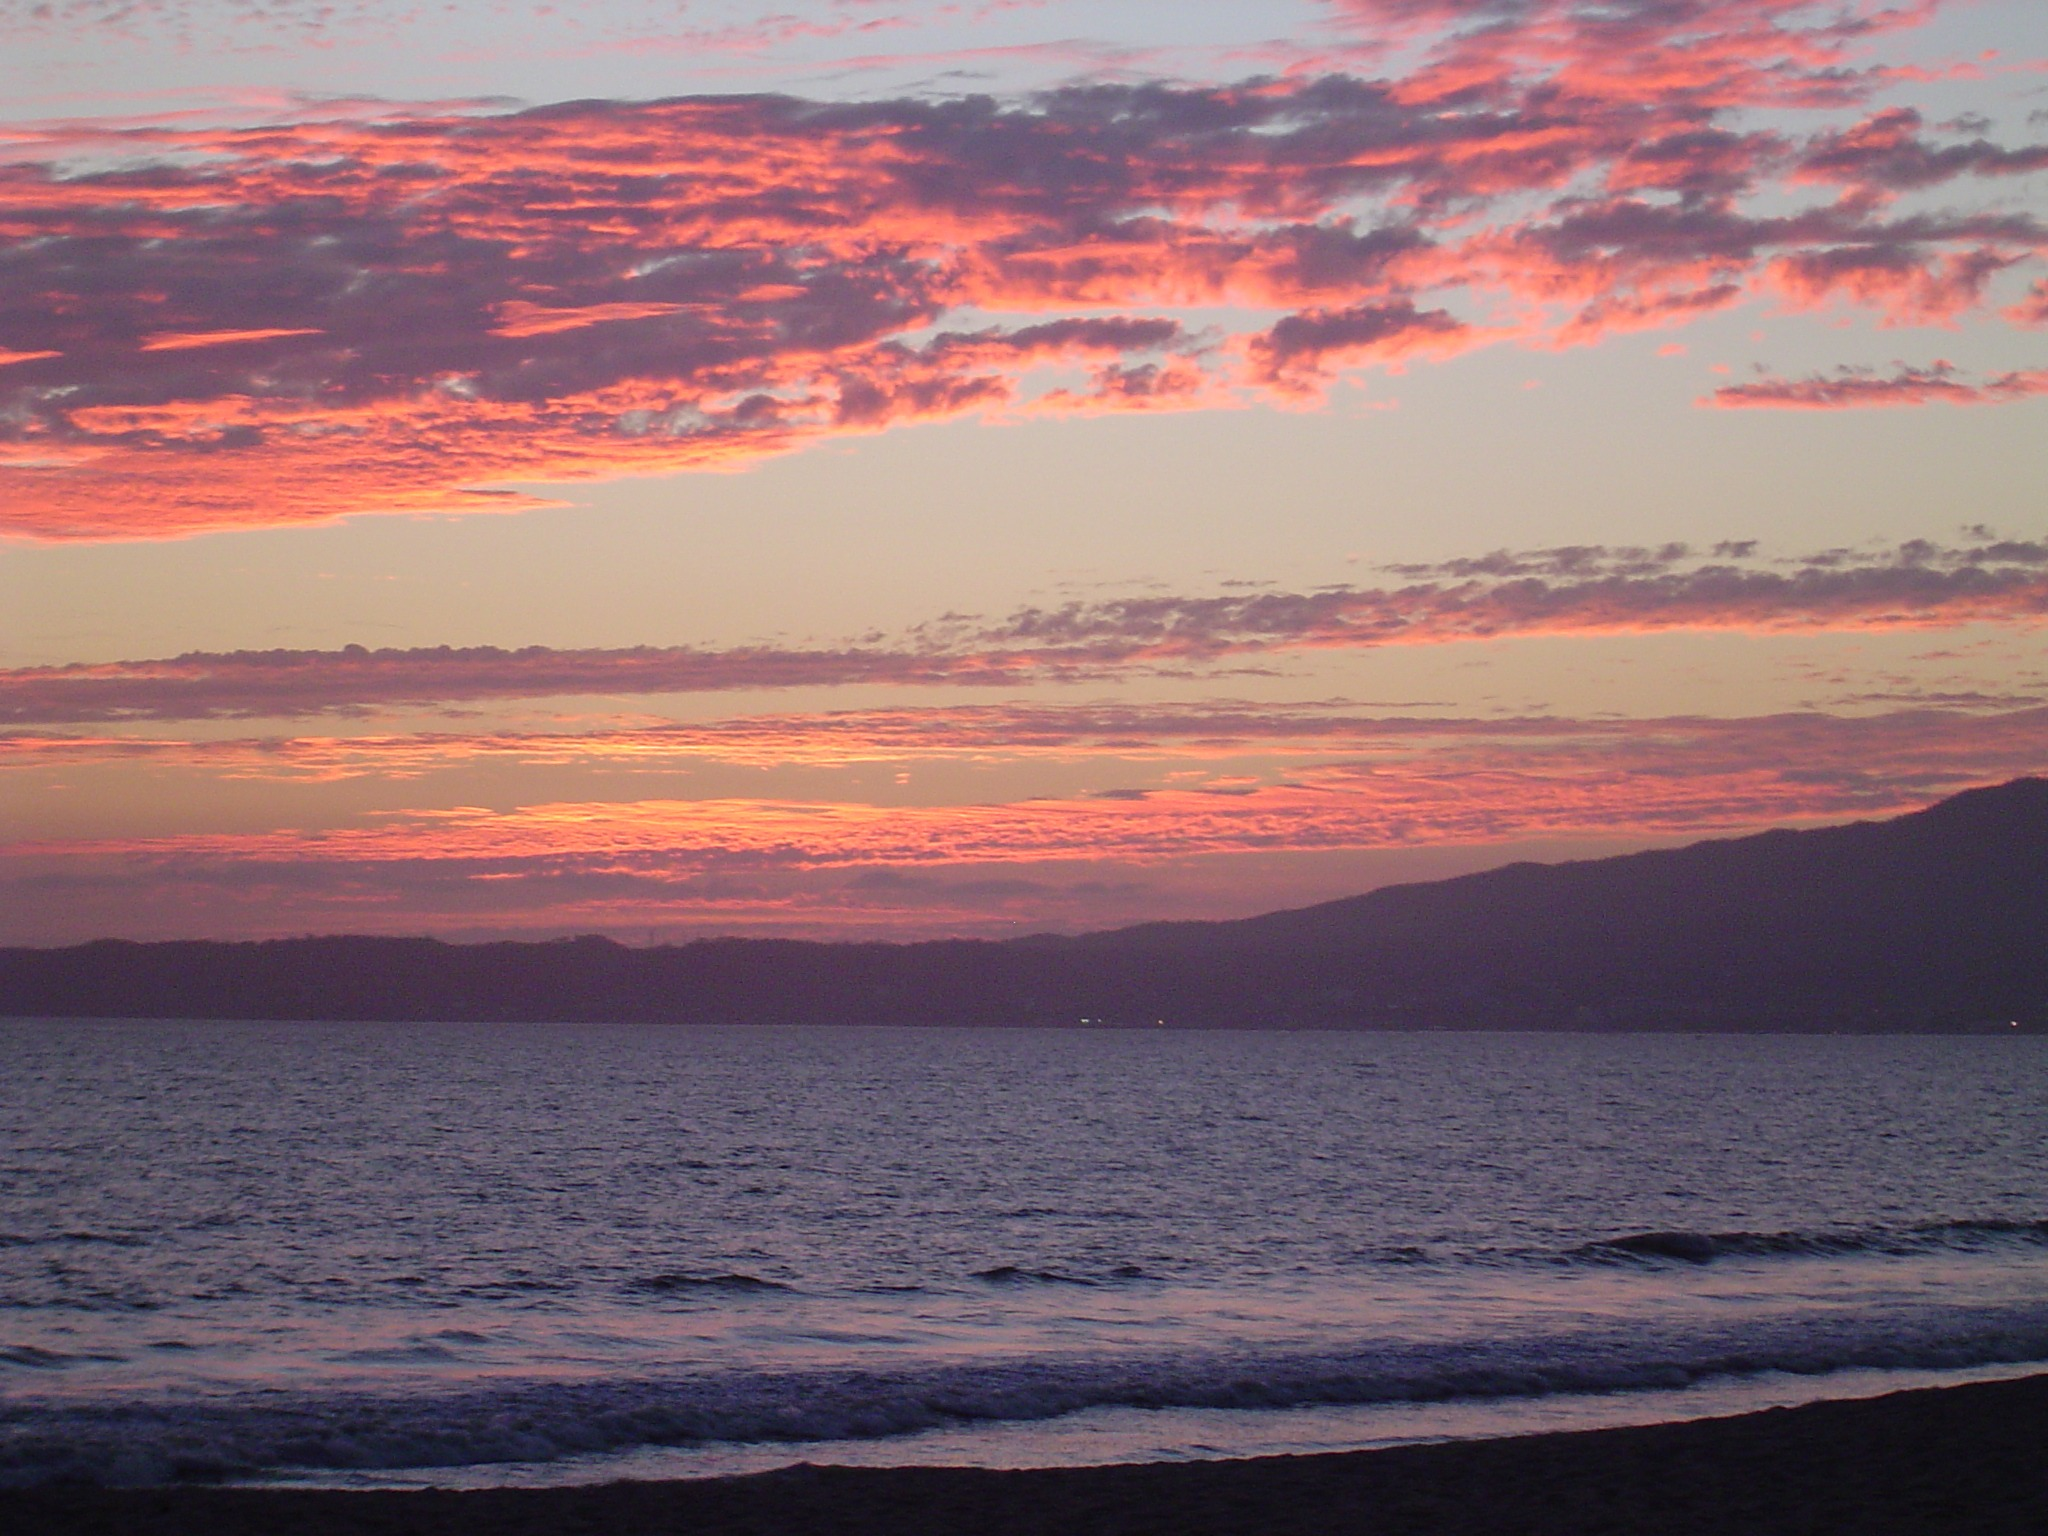 Pink Blue And Purple Sunset Sky Above Ocean Mexico Free Image